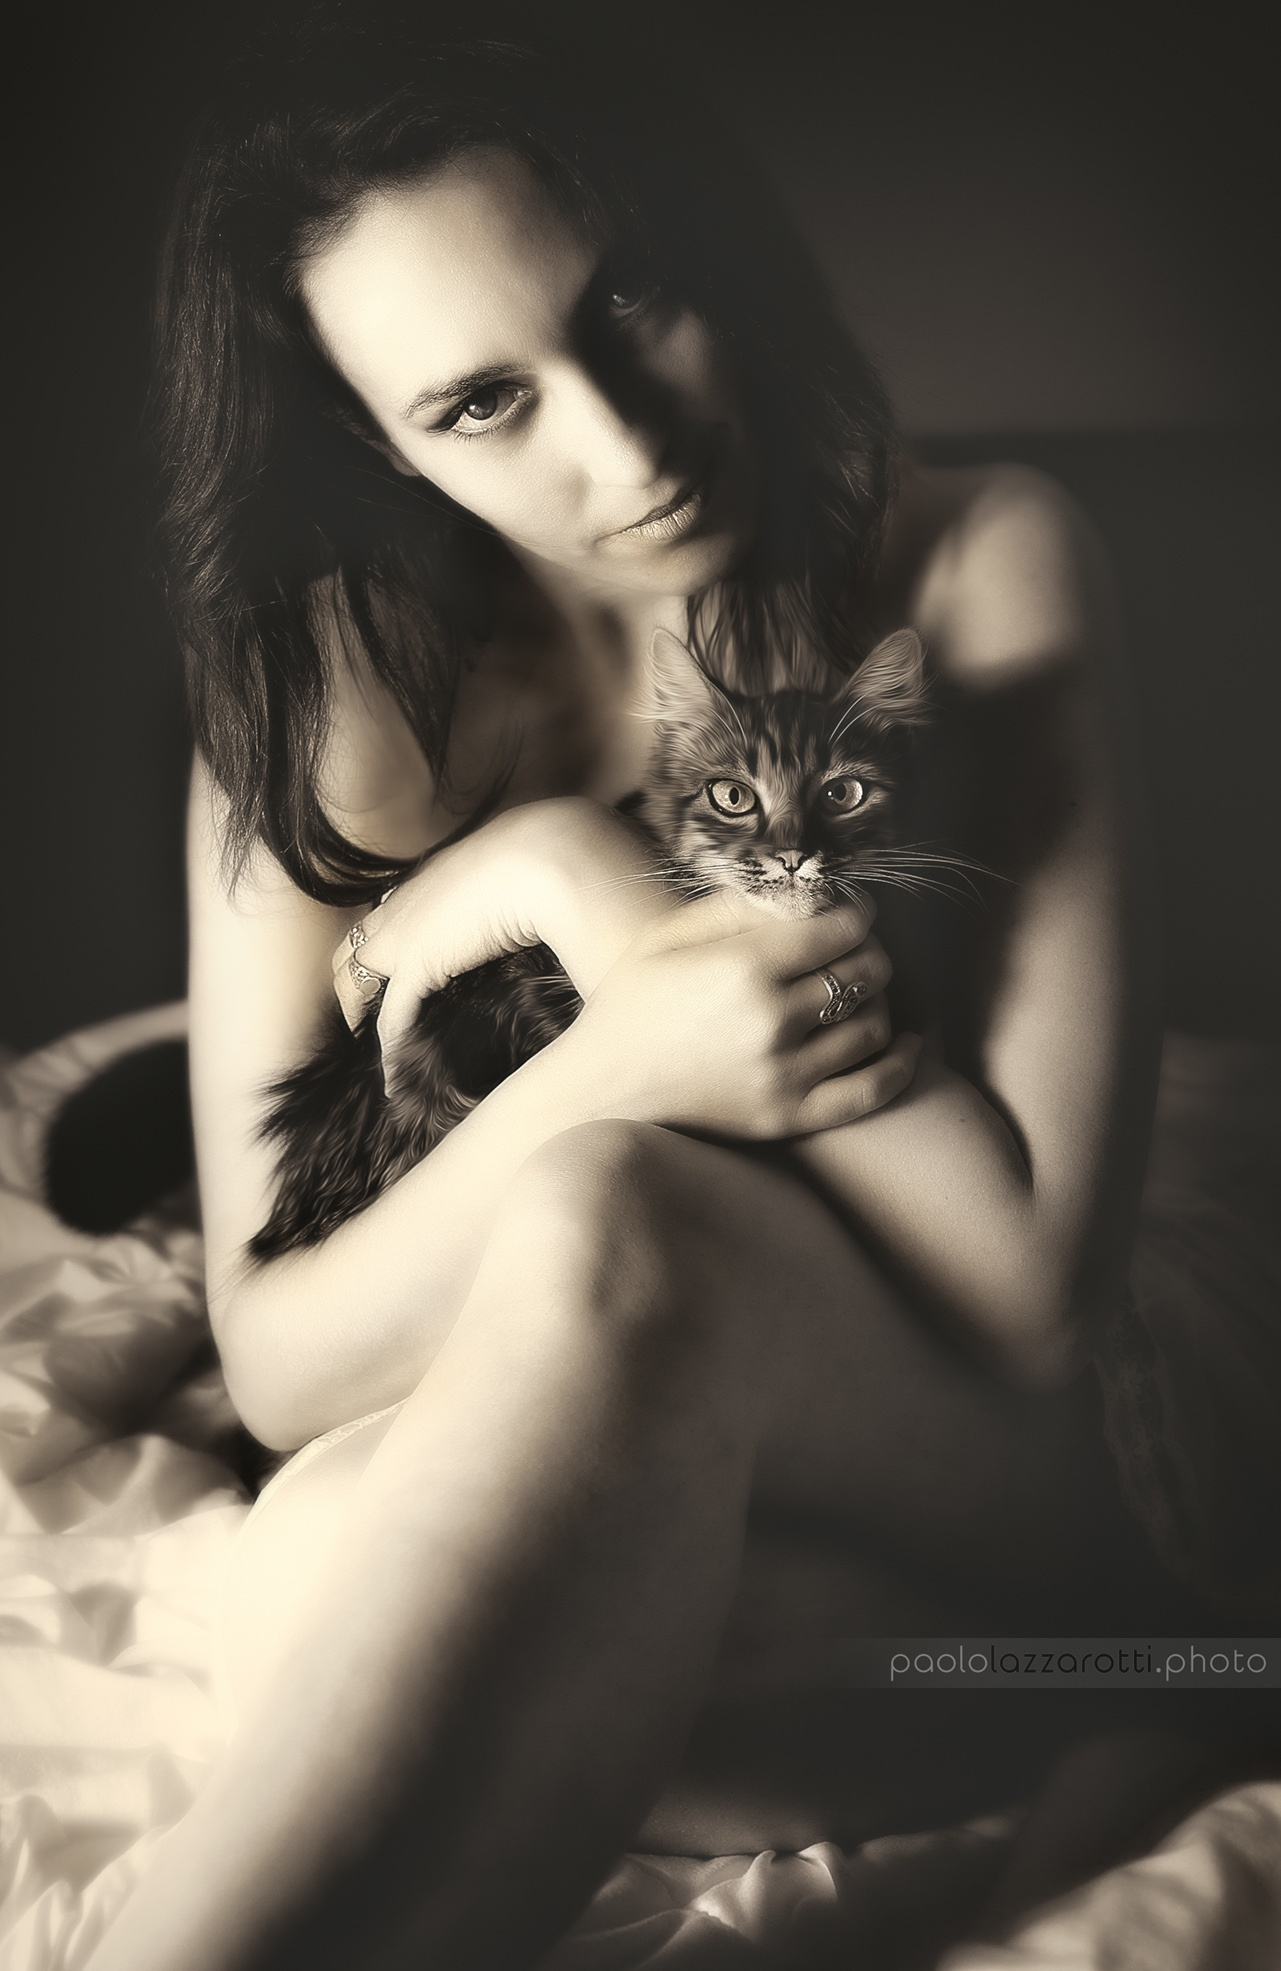 Dame with her Cat by Paolo Lazzarotti